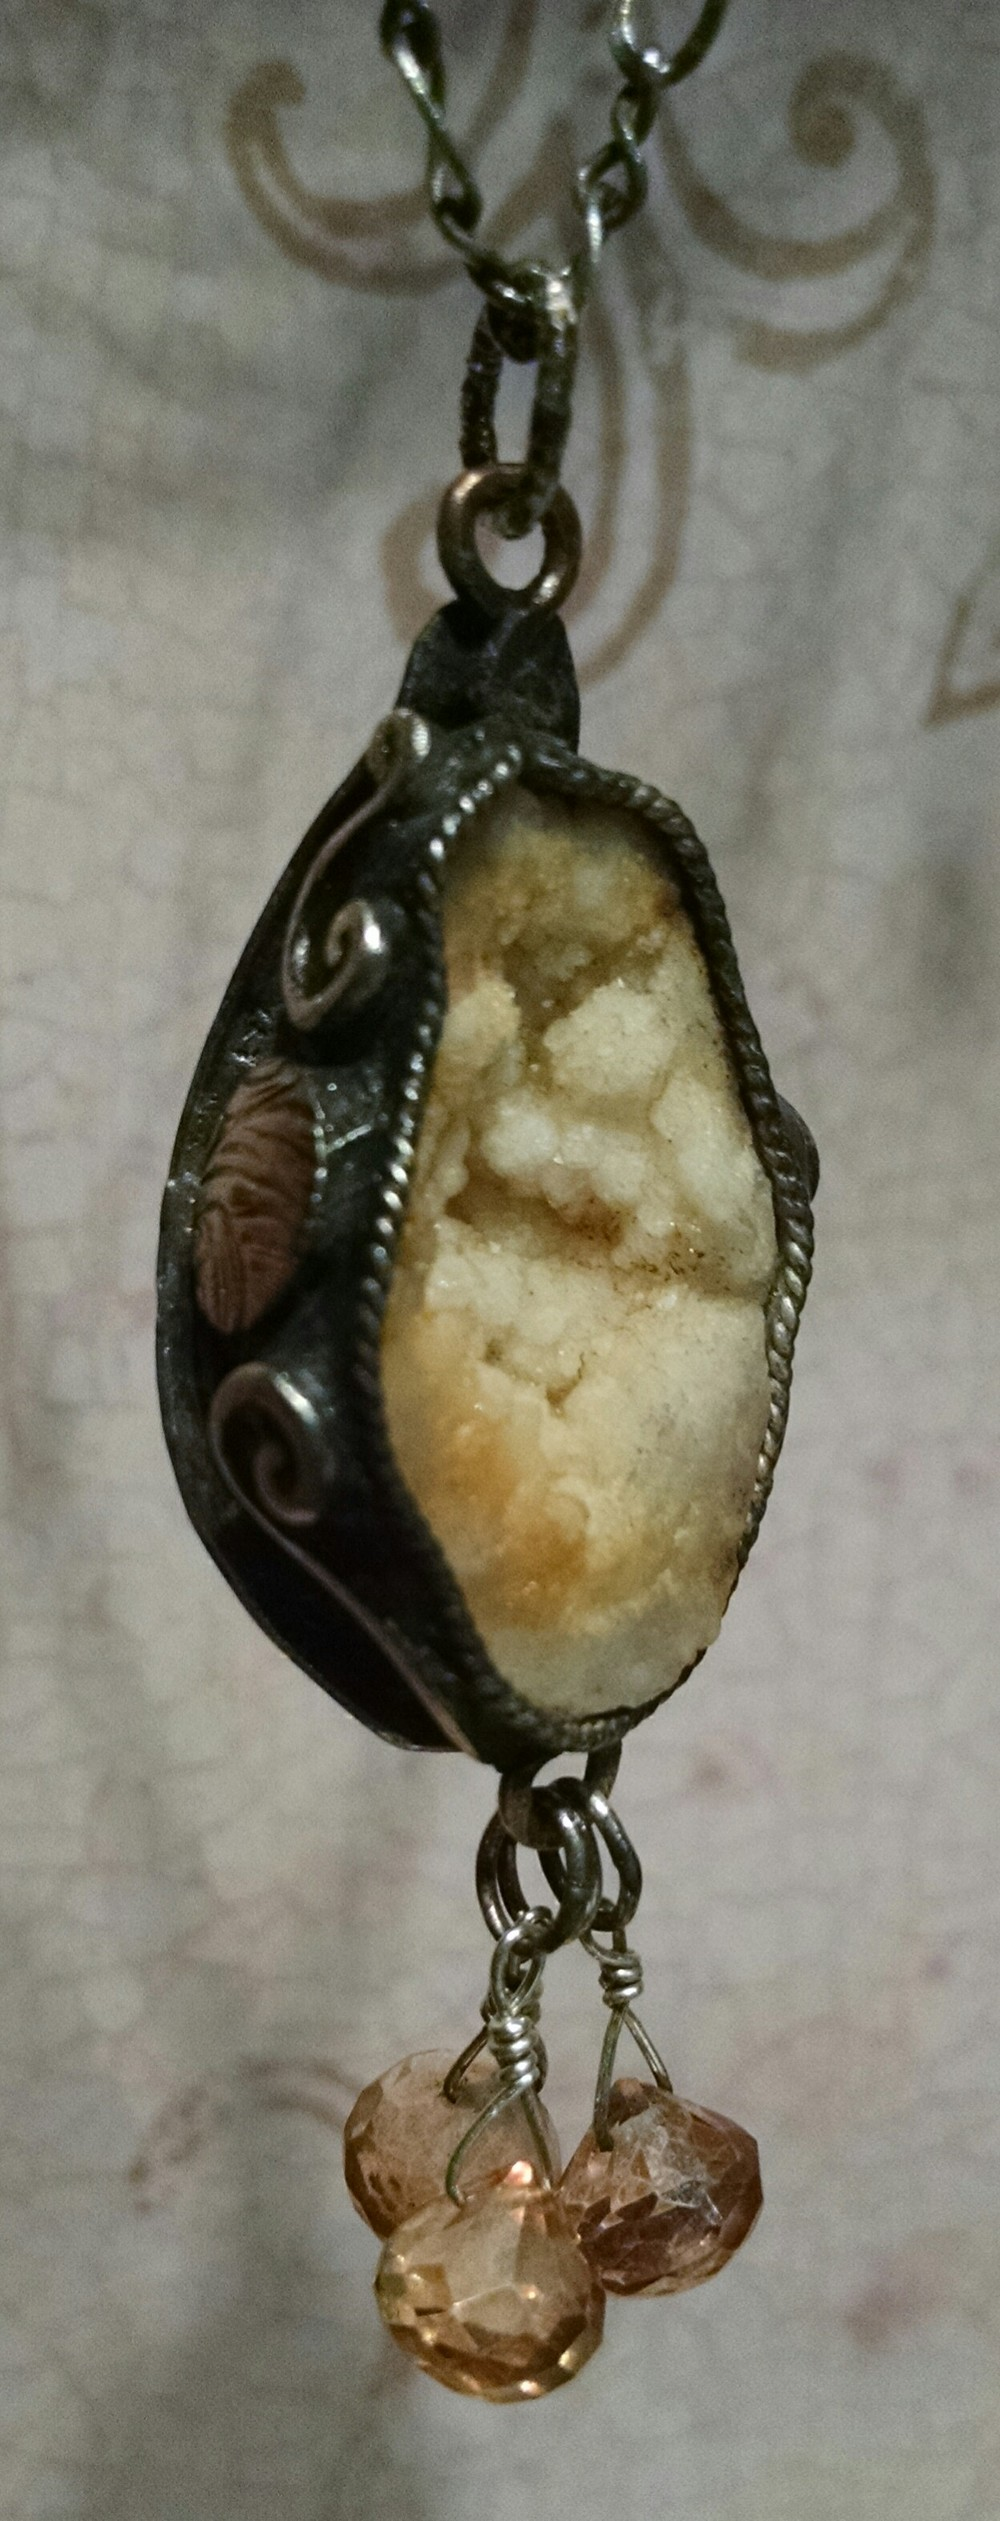 Geode mined from a private mine in Mt. Carmel fault area of Indiana. Hand-fabricated, patterned, silver-fill backing with brass details on sides. Trio of tangerine quartz